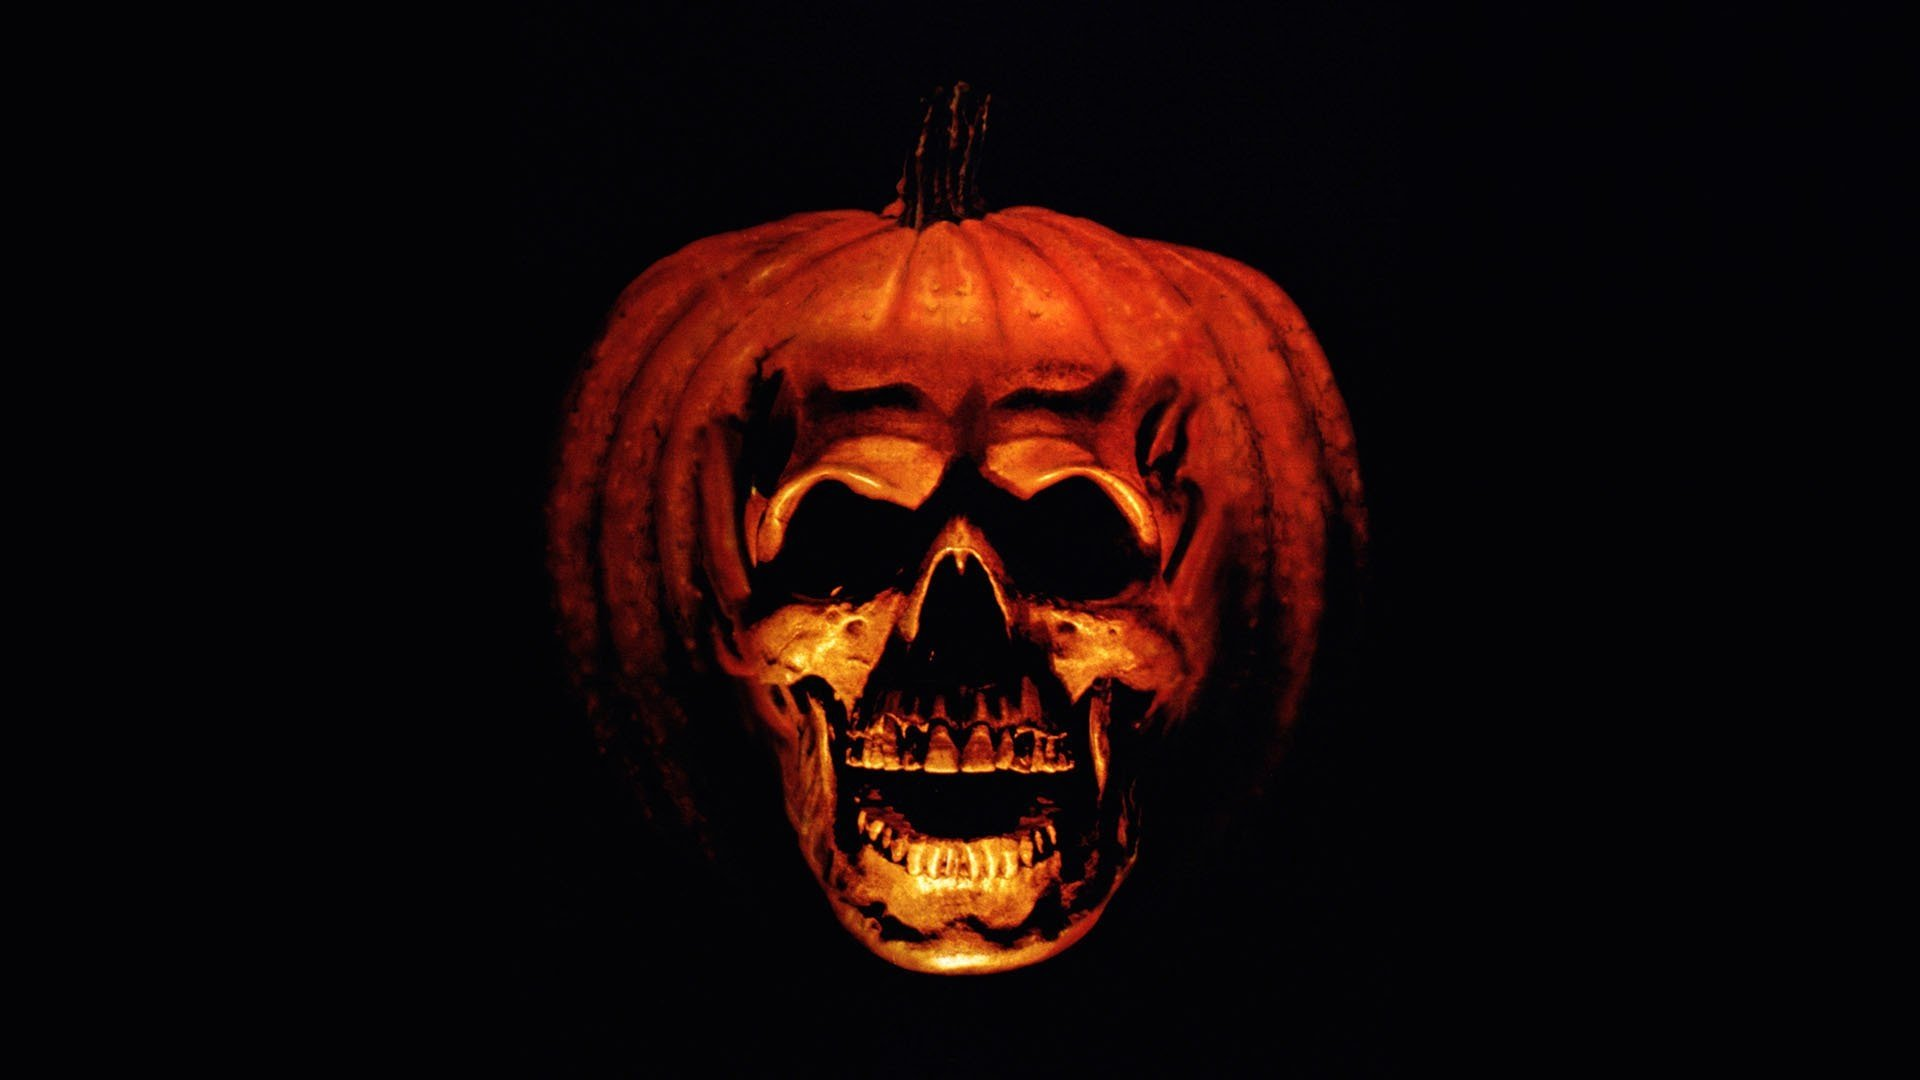 Halloween ii 1981 hd wallpaper background image - Scary movie 5 wallpaper ...